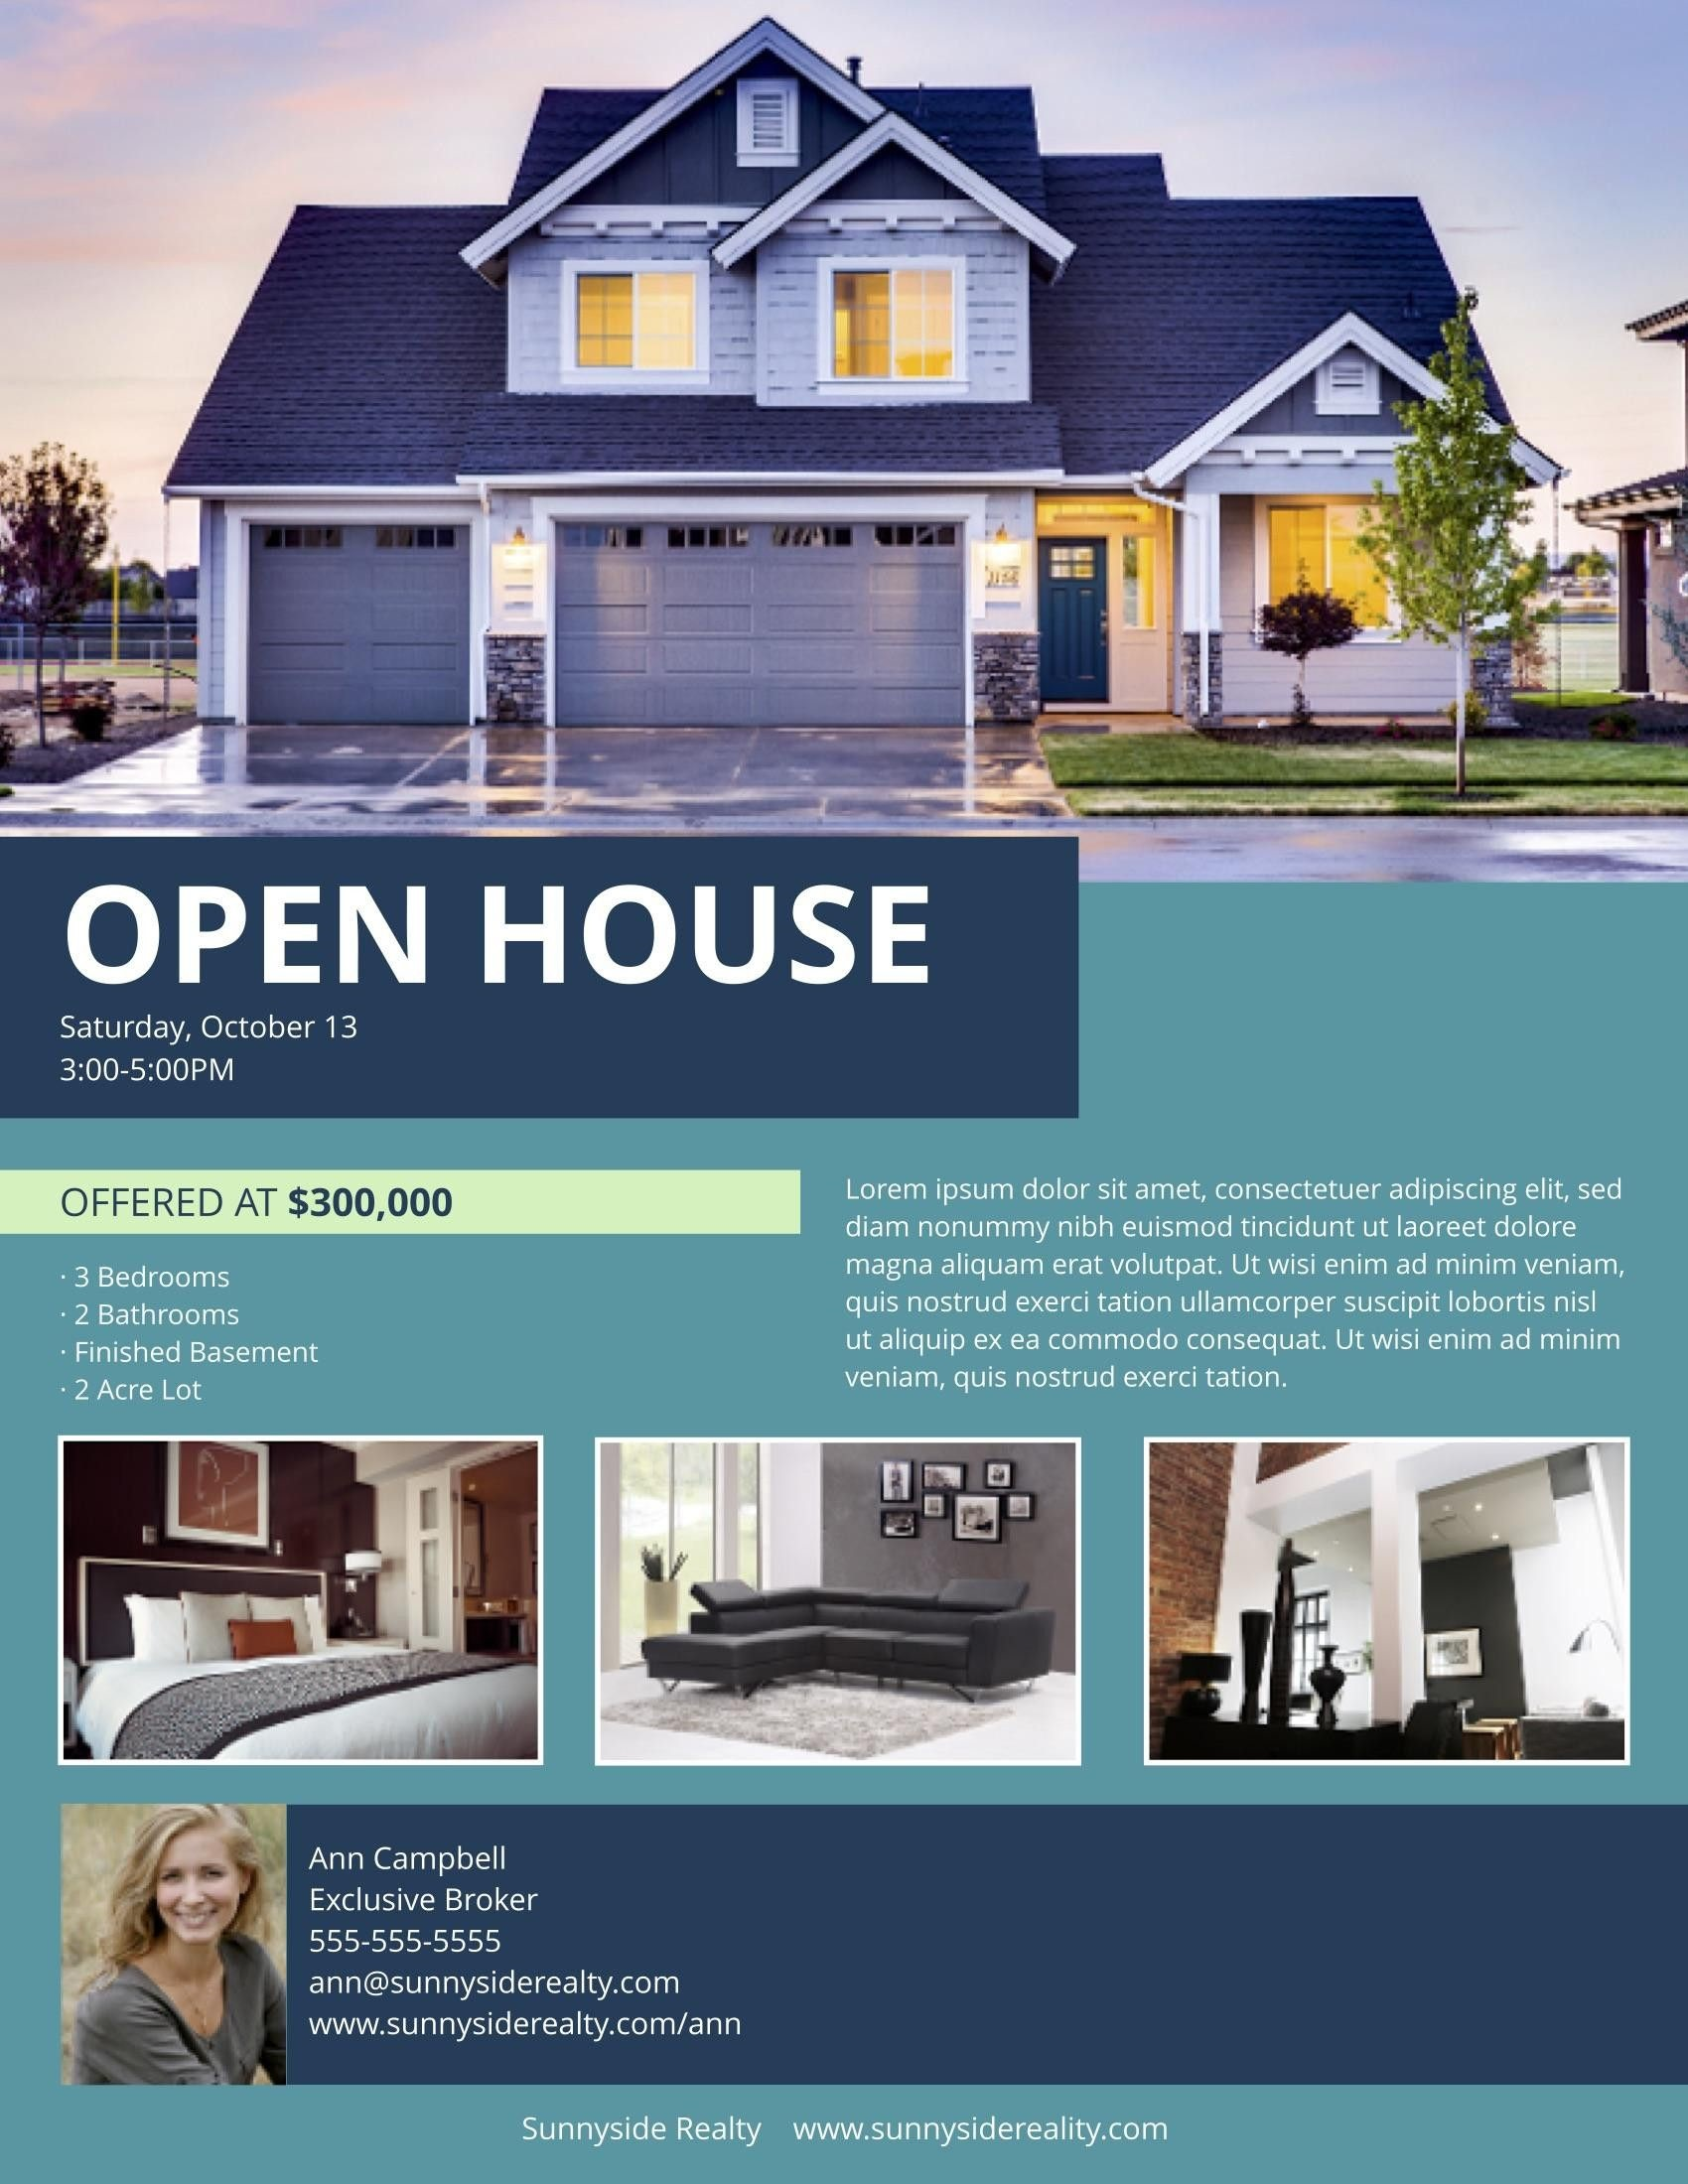 003 Imposing Real Estate Marketing Flyer Template Free Example Full